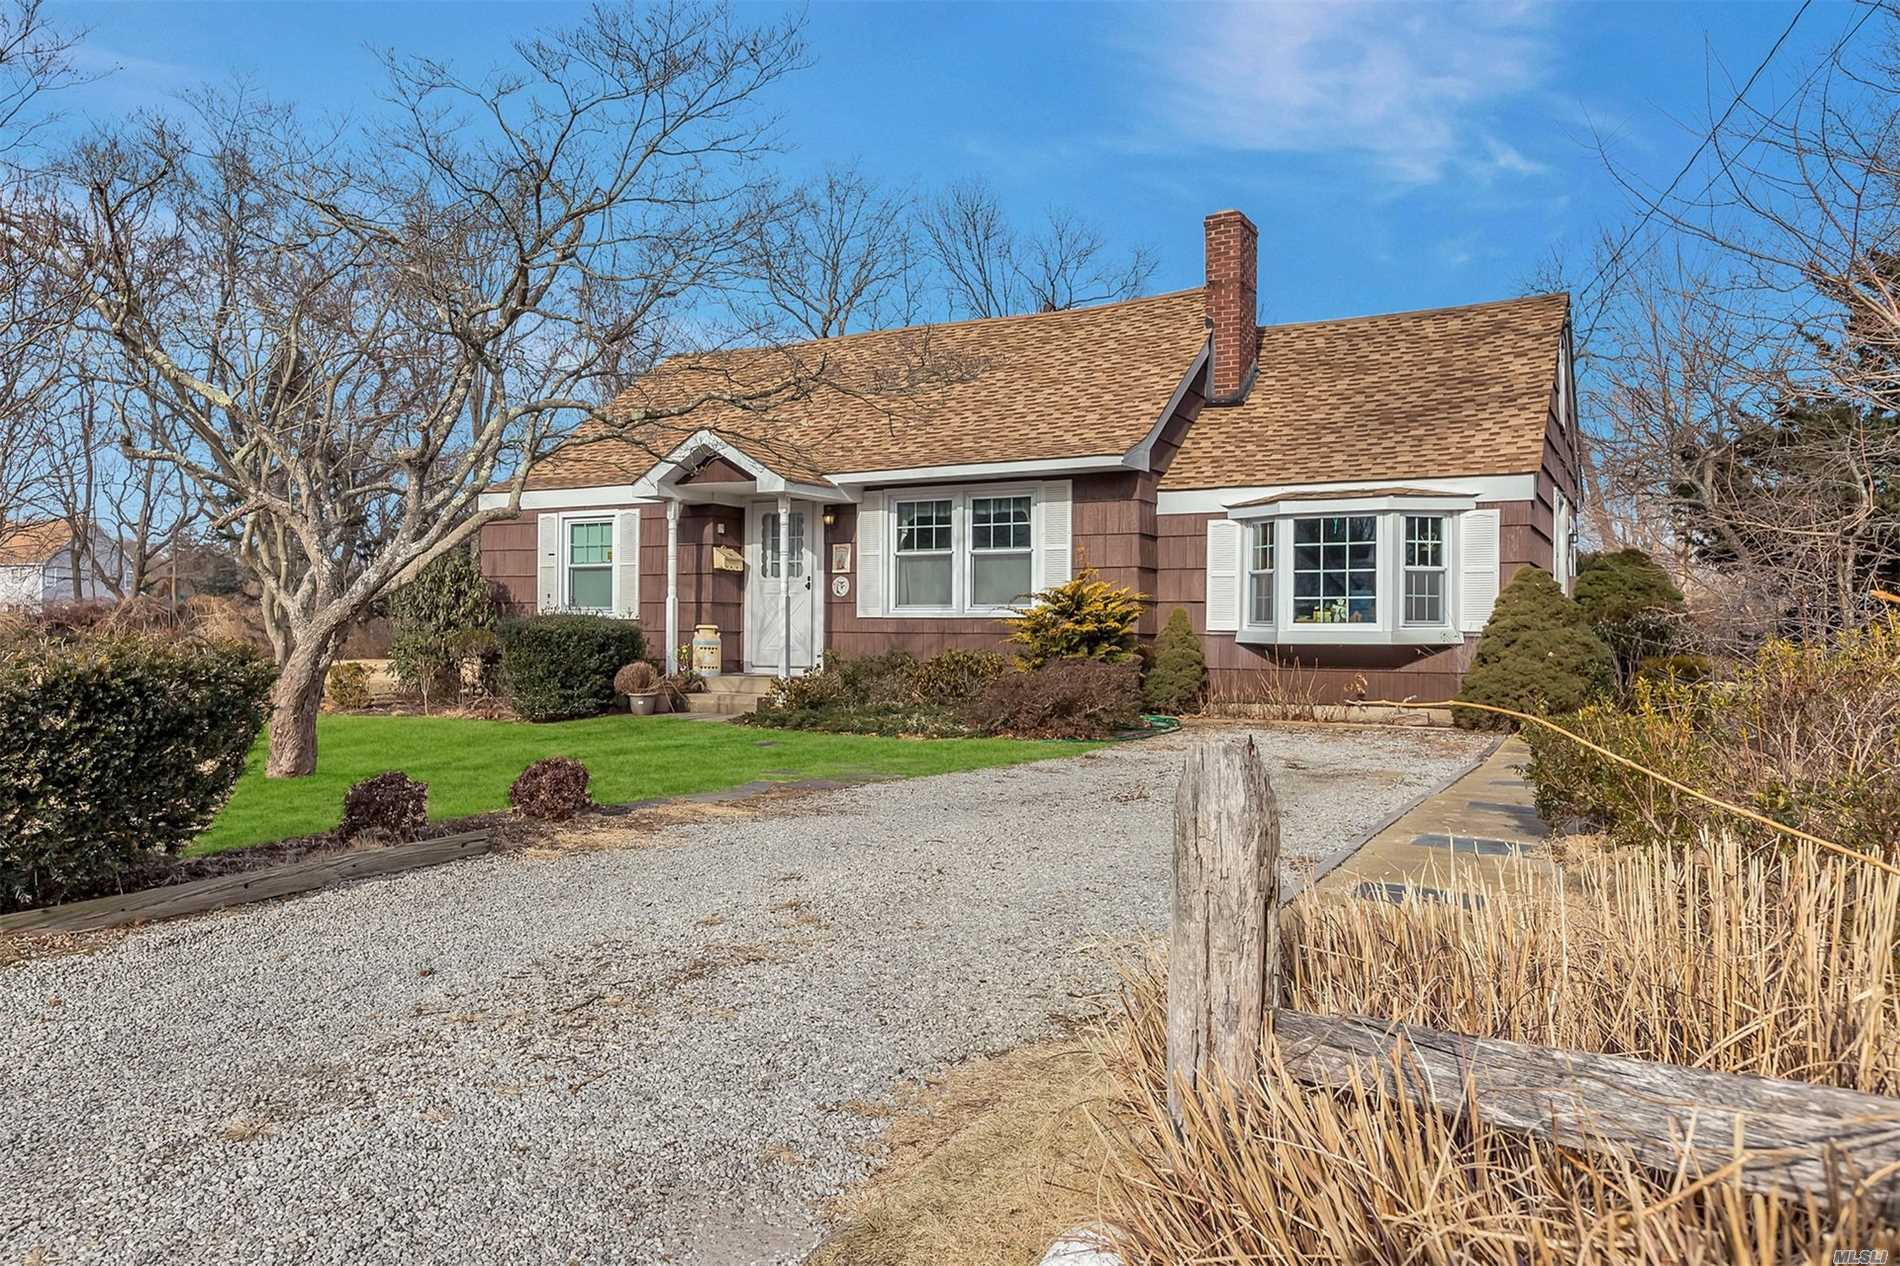 Four Bedroom Expanded Cape. Large Yard With Room To Grow. Living Room, Dining Room Bayport Blue Point Schools. Charming Gem In Need Of Tlc Or Bring A Bigger Vision And Expand On This Wonderful Location.